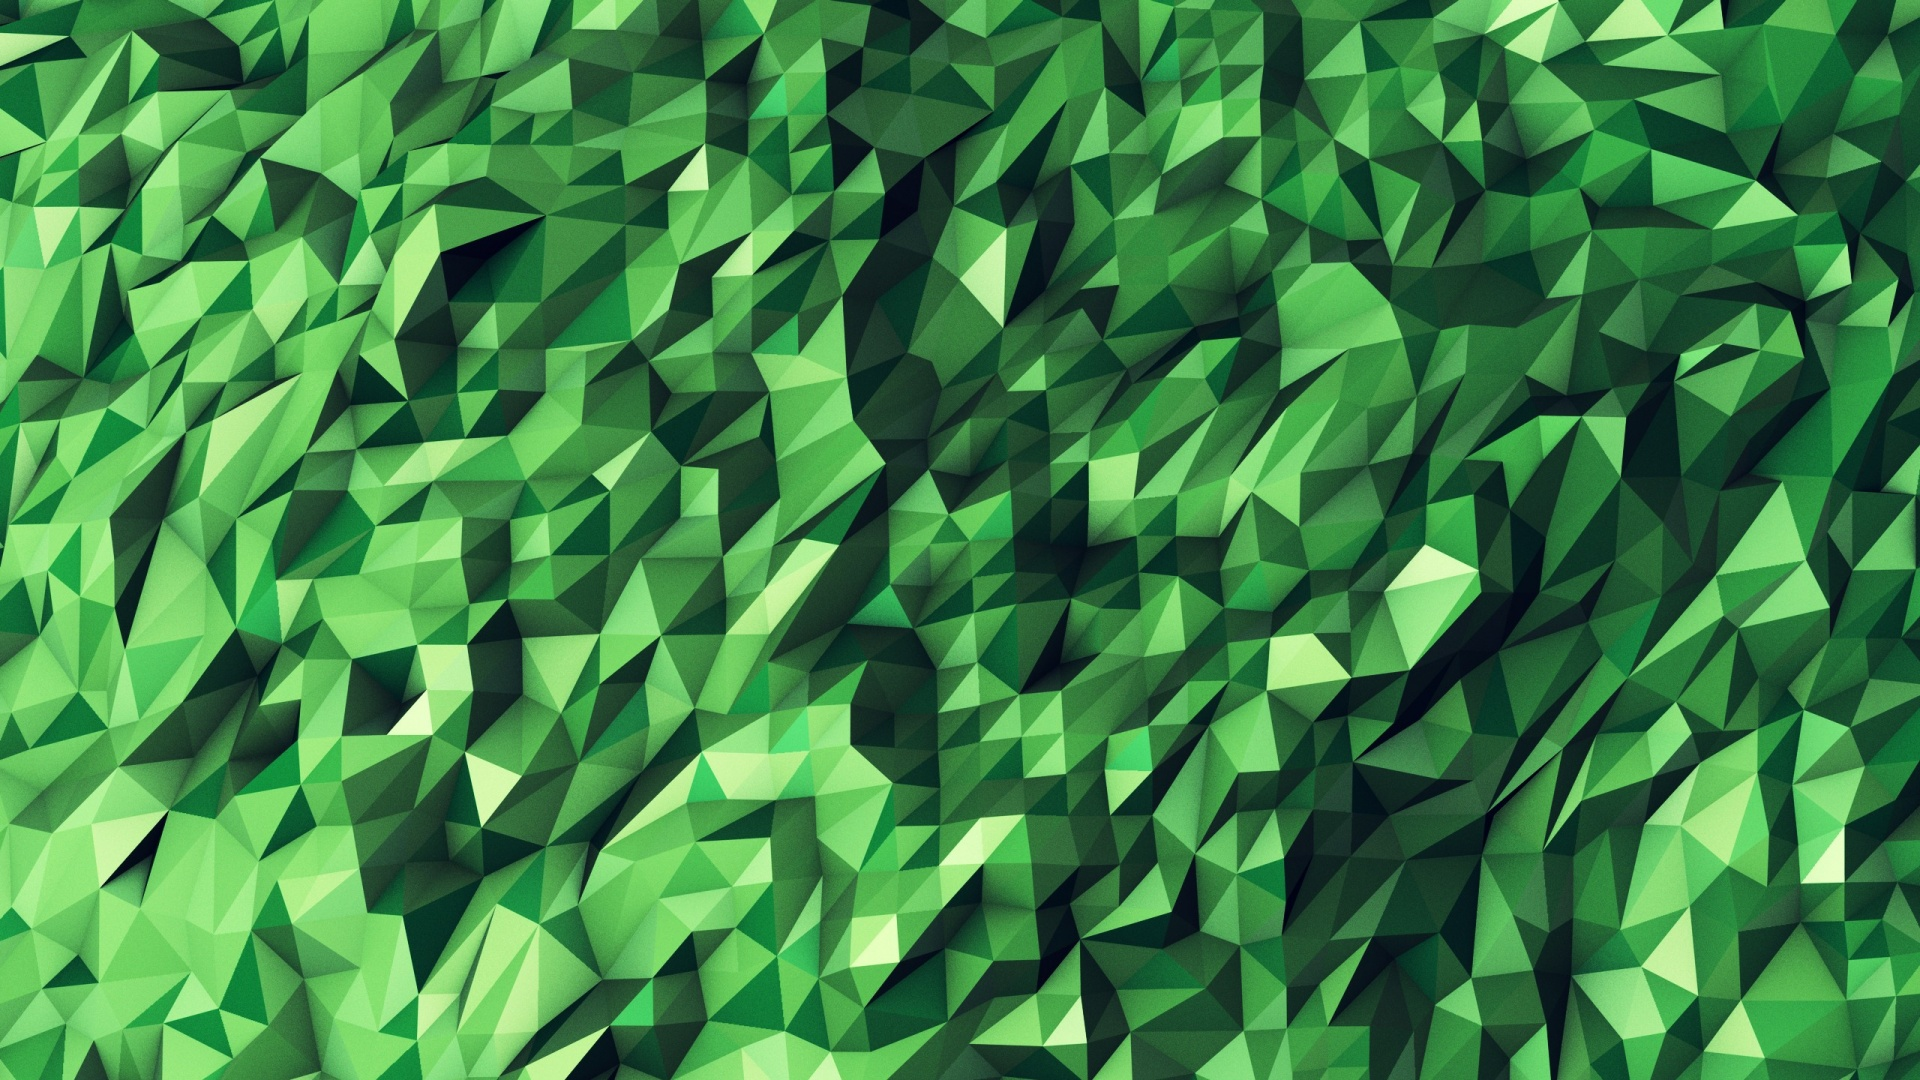 Geometric Green Wallpaper Wallpapersafari